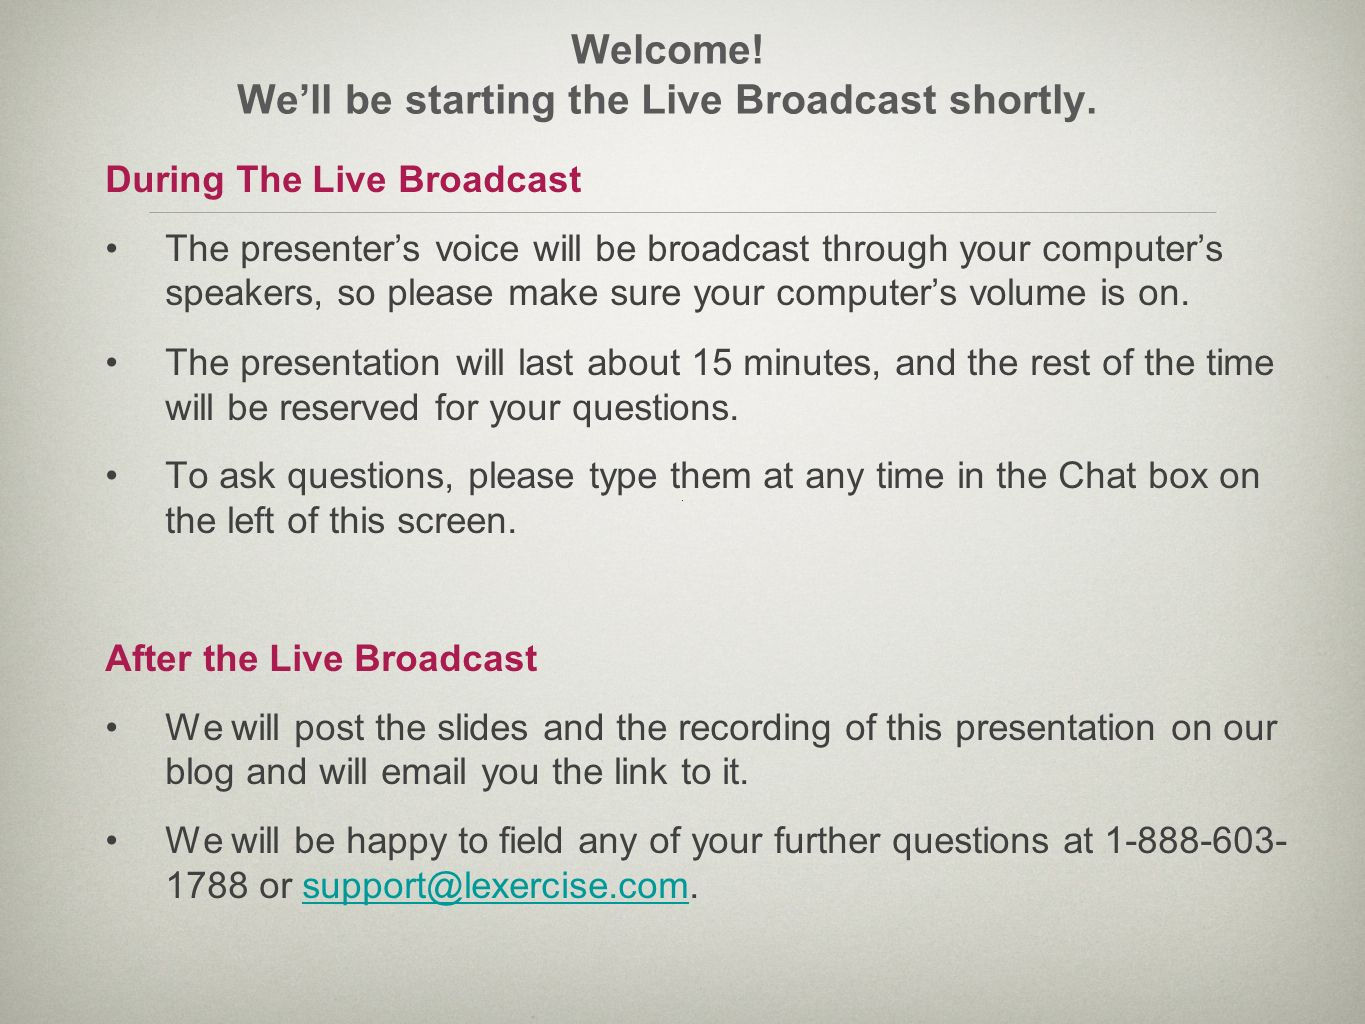 Welcome! We'll be starting the Live Broadcast shortly.